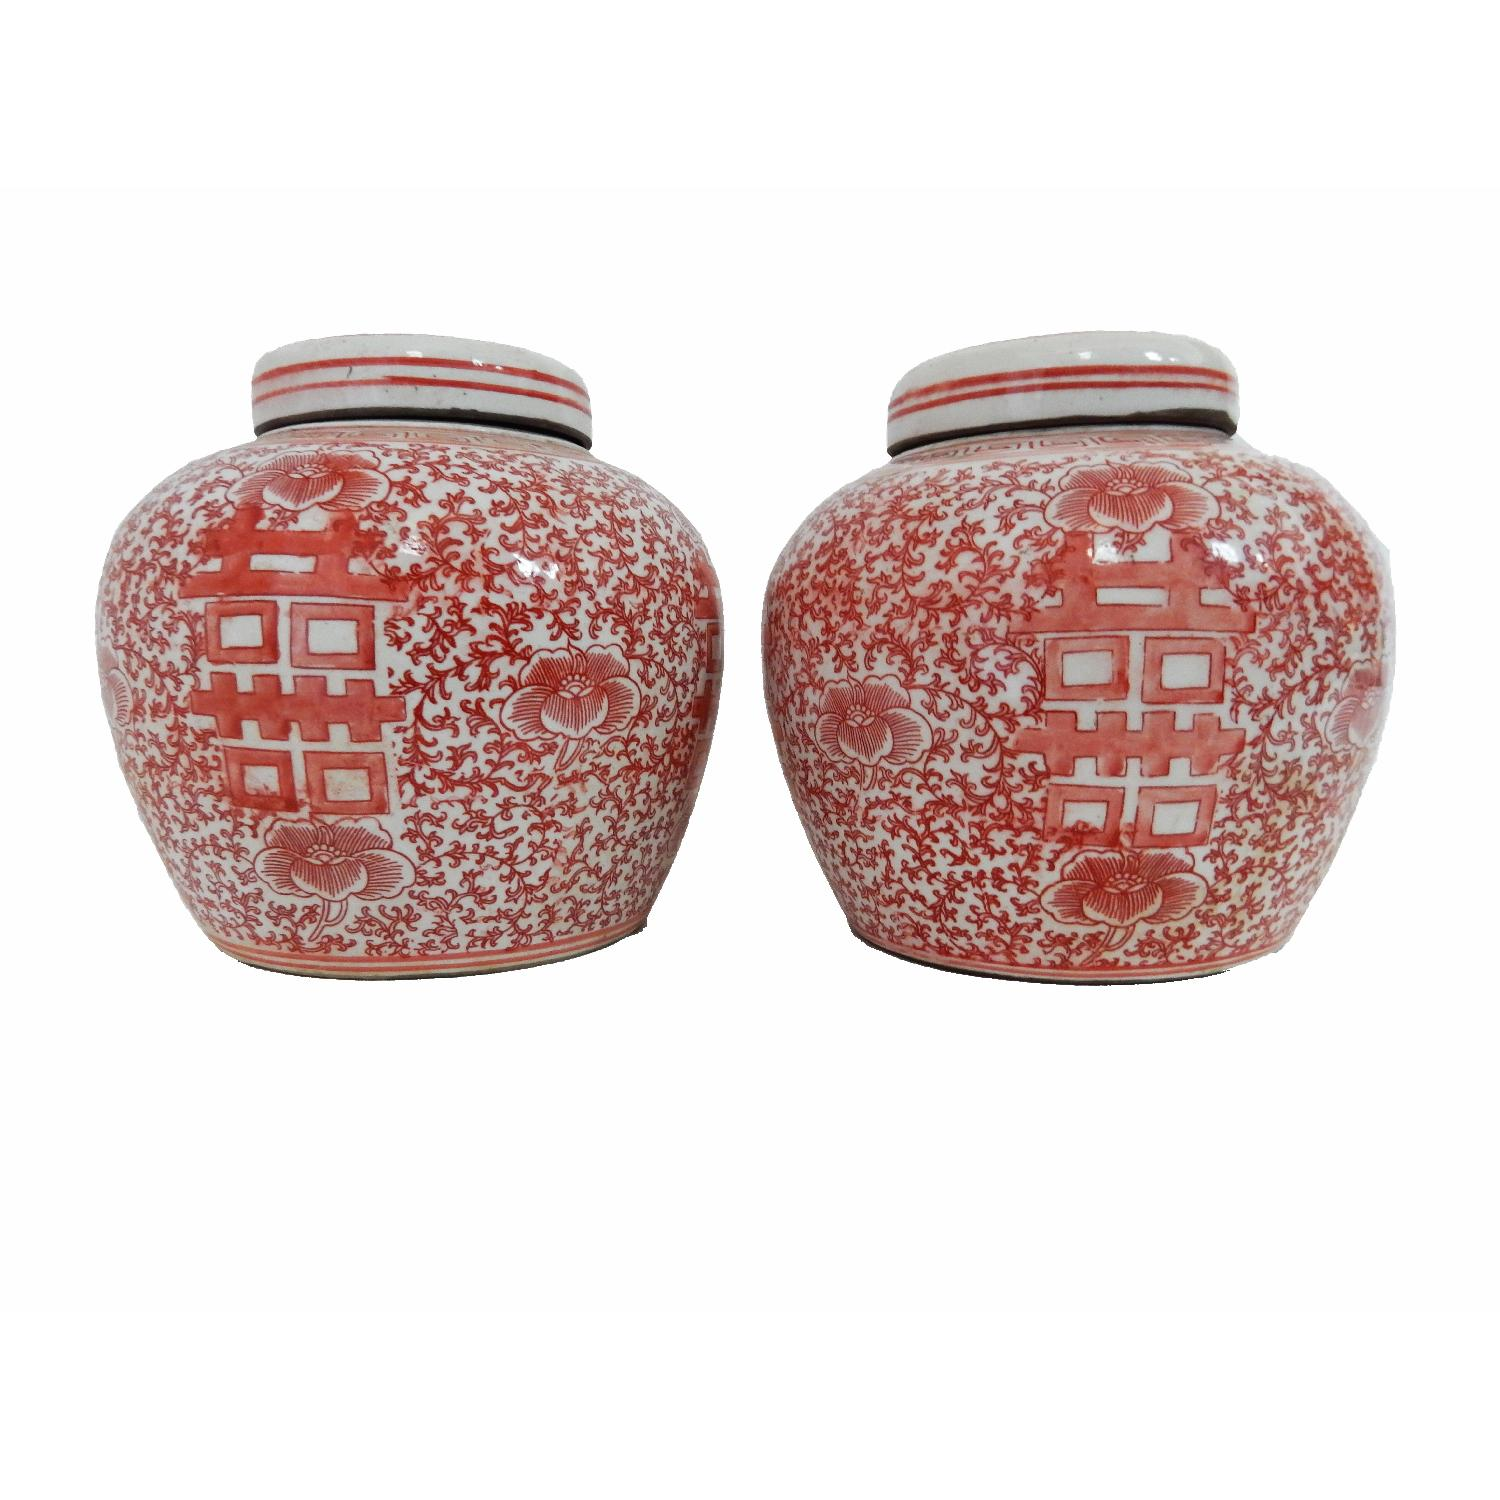 pink u0026 white porcelain double happiness ginger jars